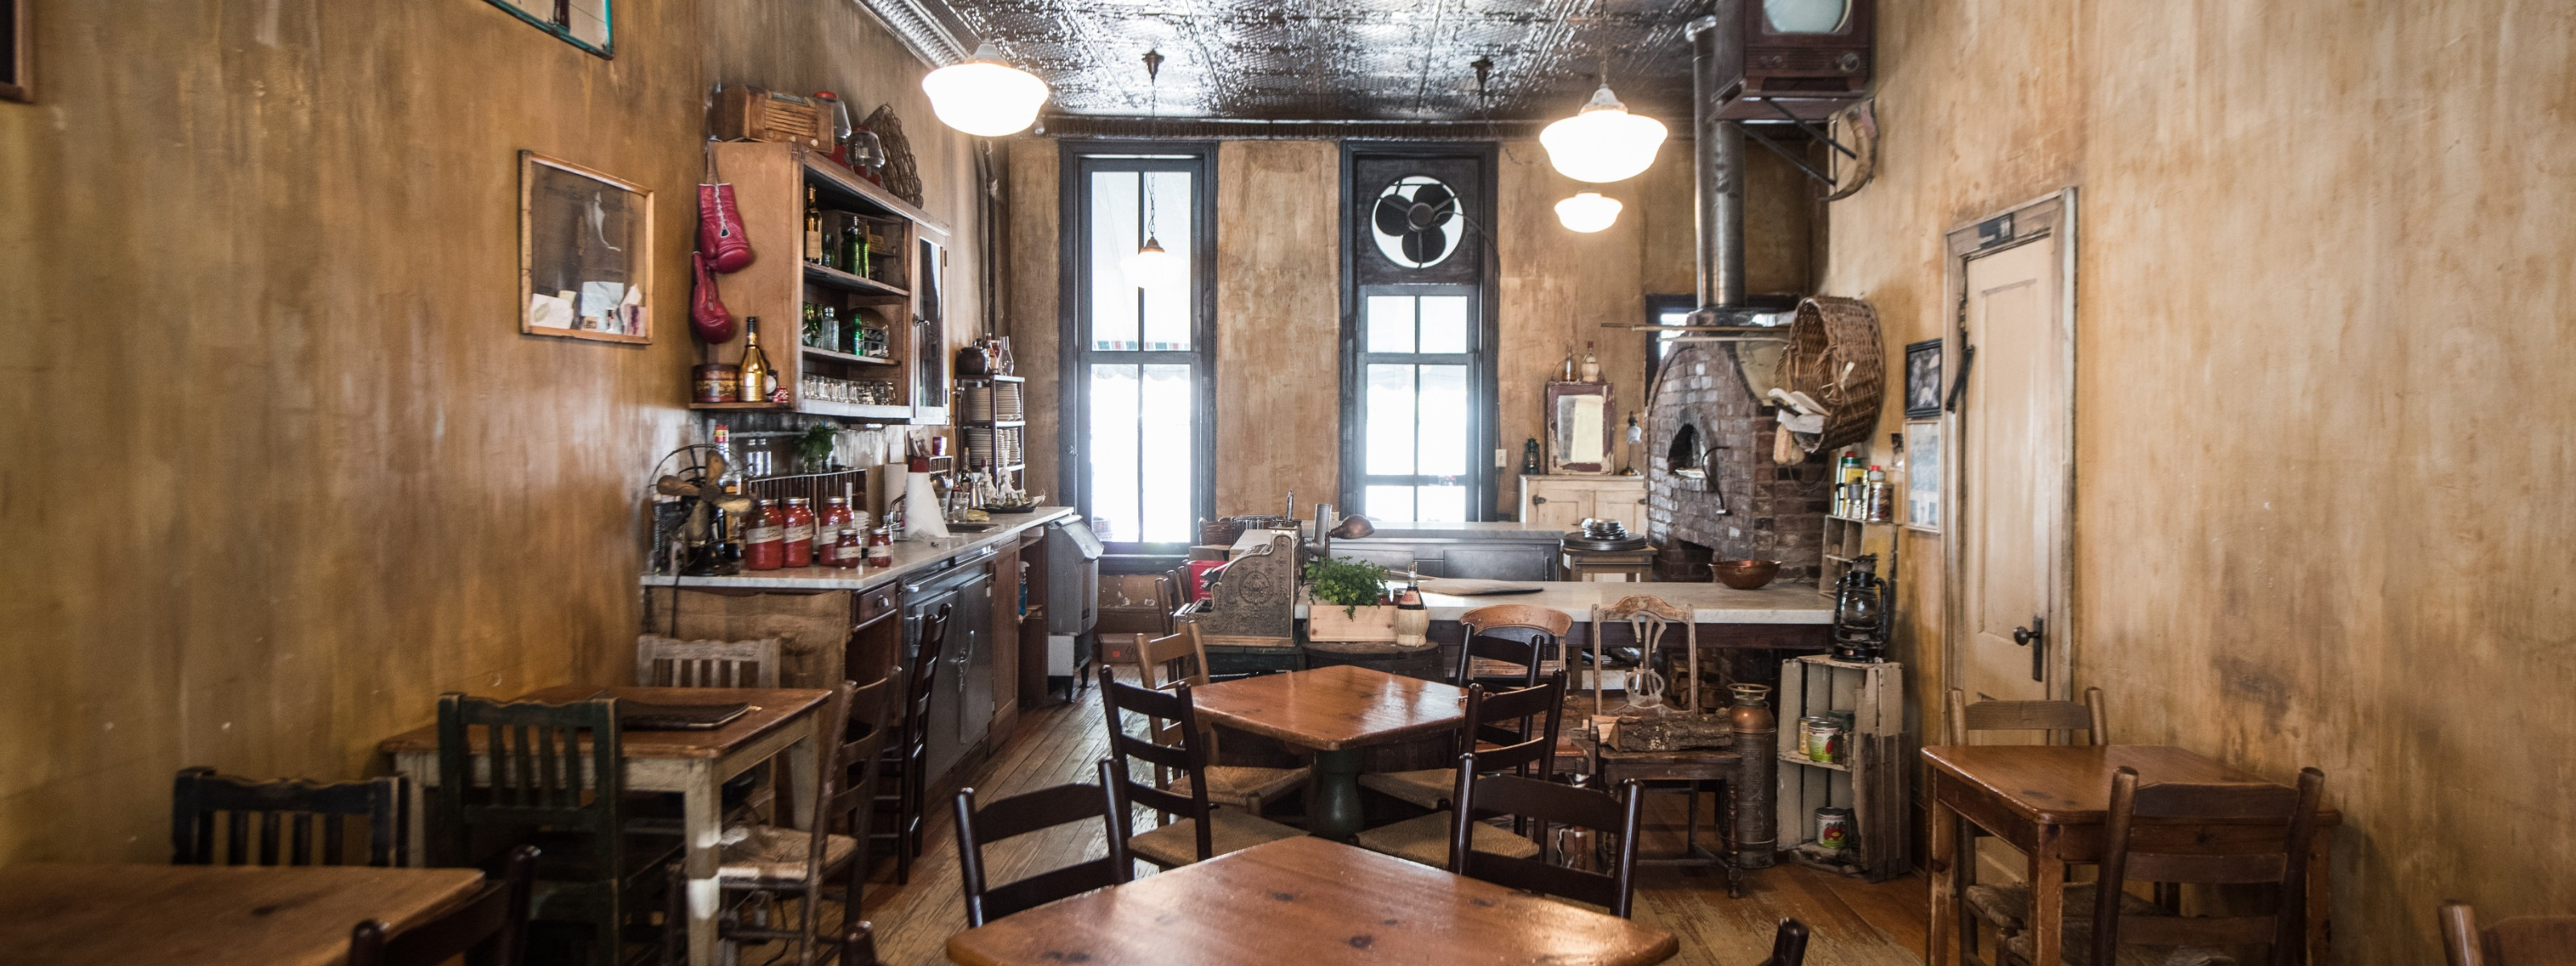 The NYC Greatest Hits List - New York - The Infatuation